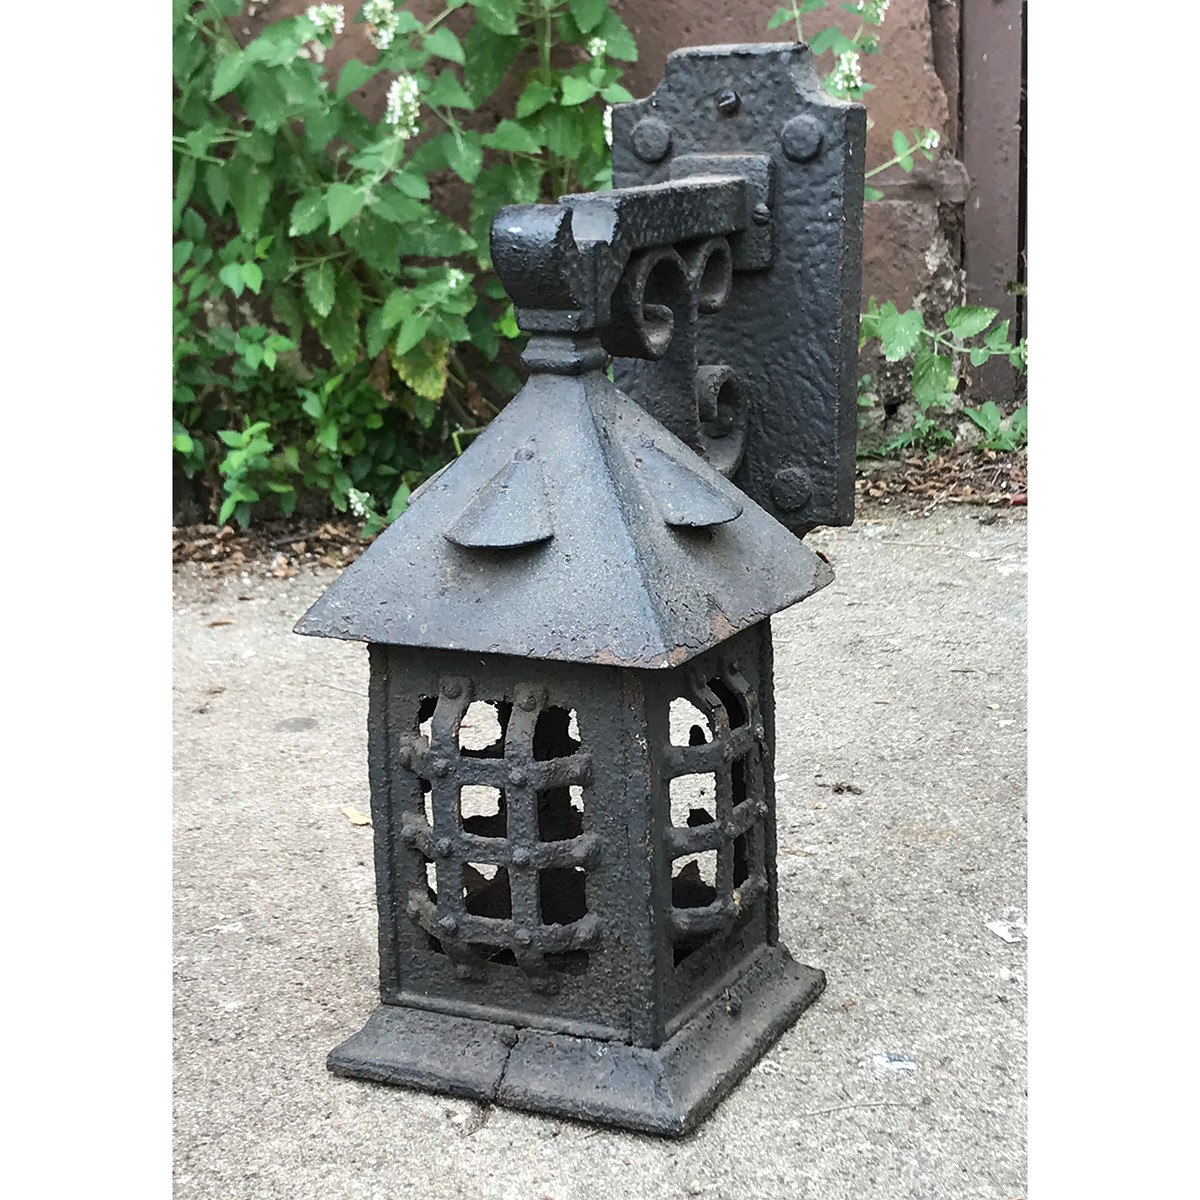 L20048 - Antique Cast Iron Exterior Sconce - Currently Unrestored